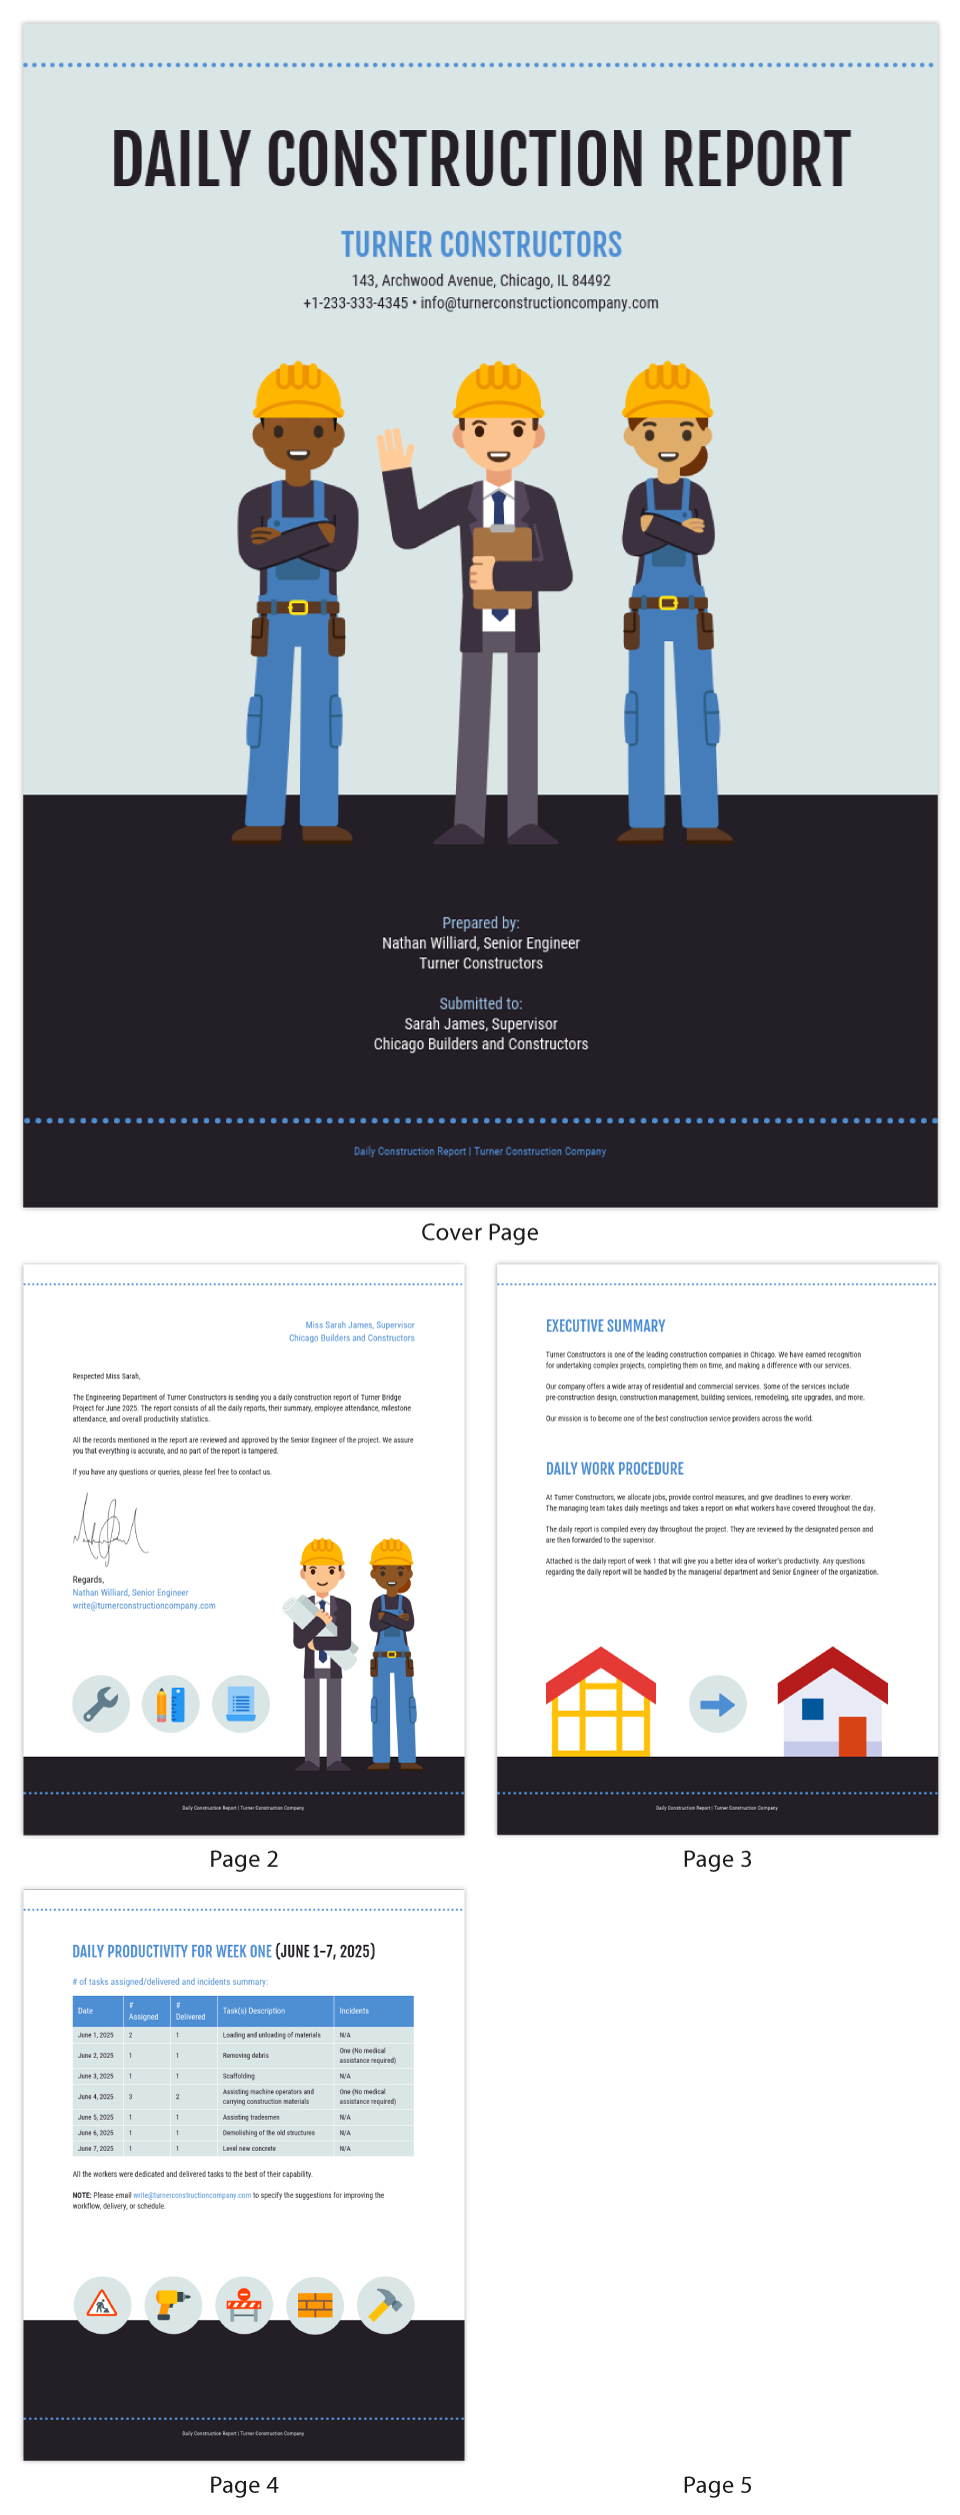 Illustrative Construction Daily Report Template